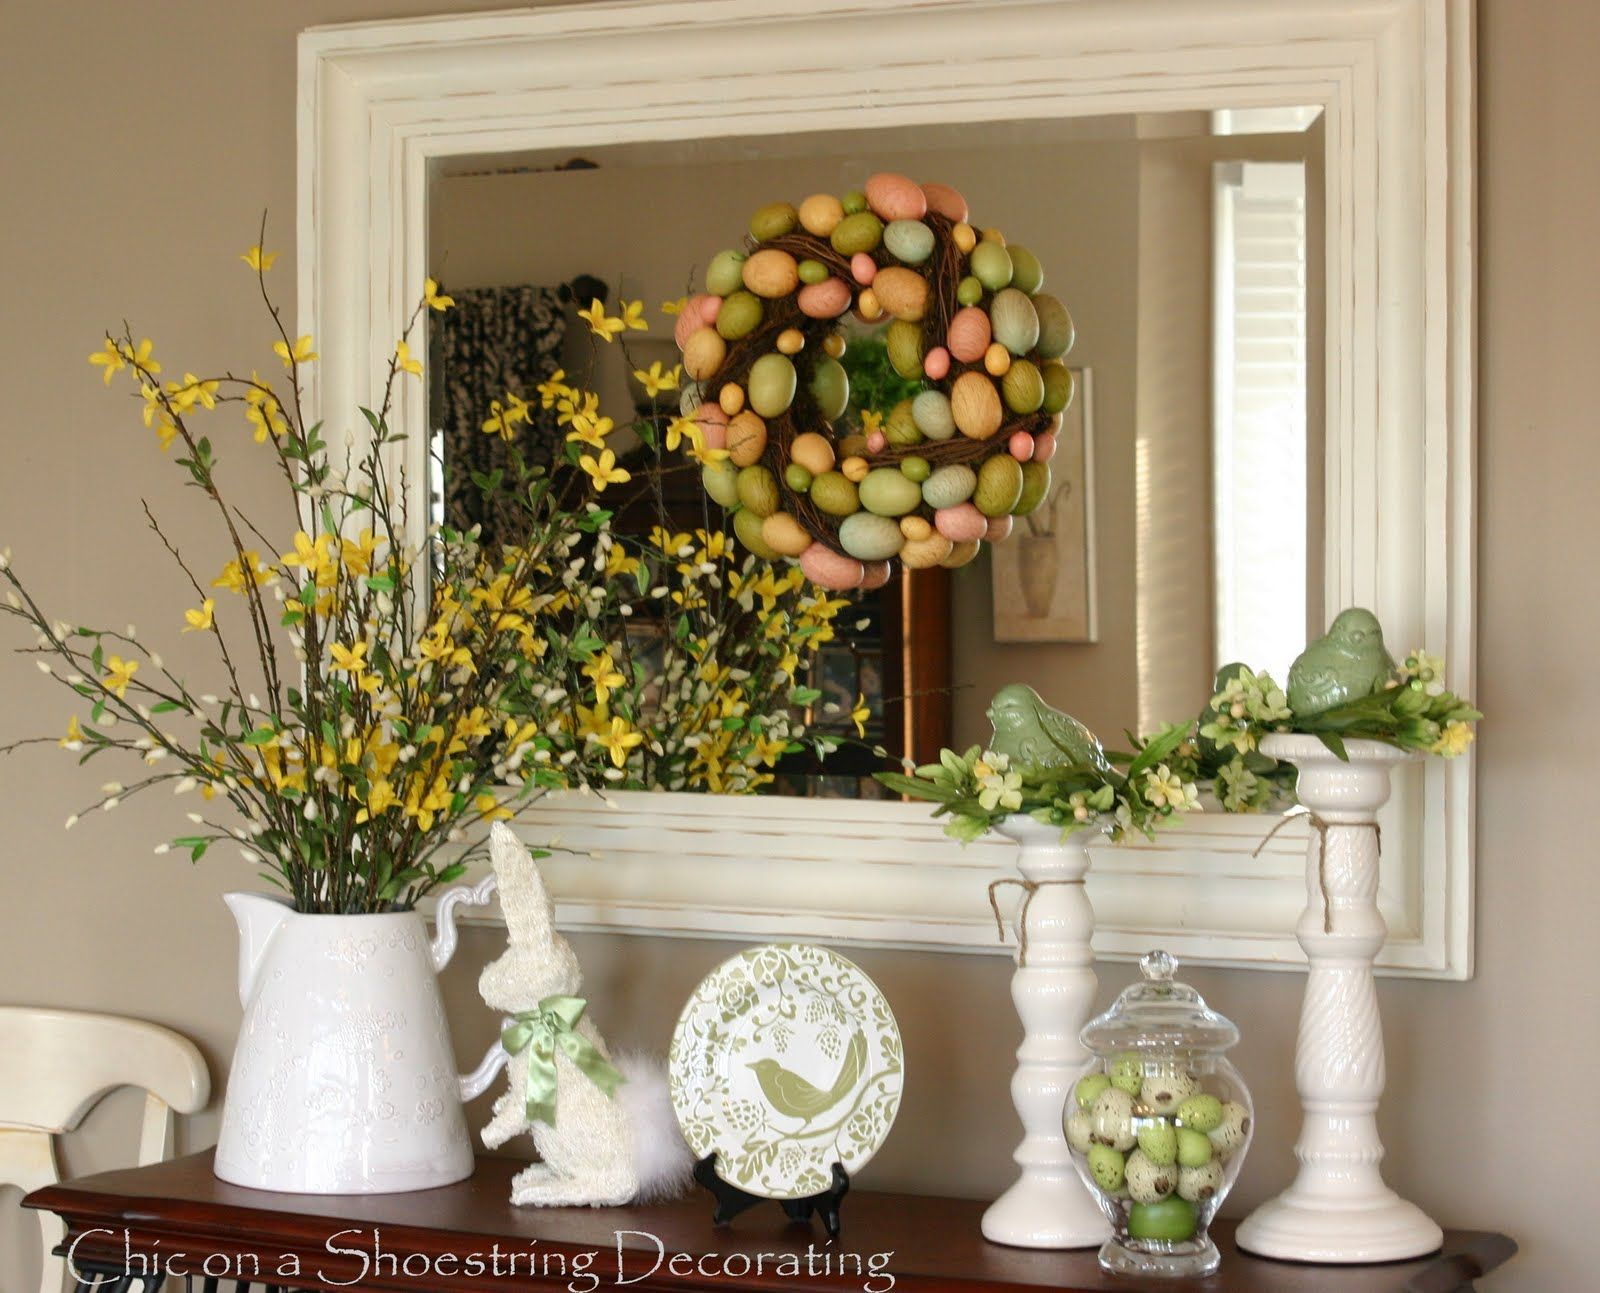 1000+ images about Easter - Mantels on Pinterest | Spring ...